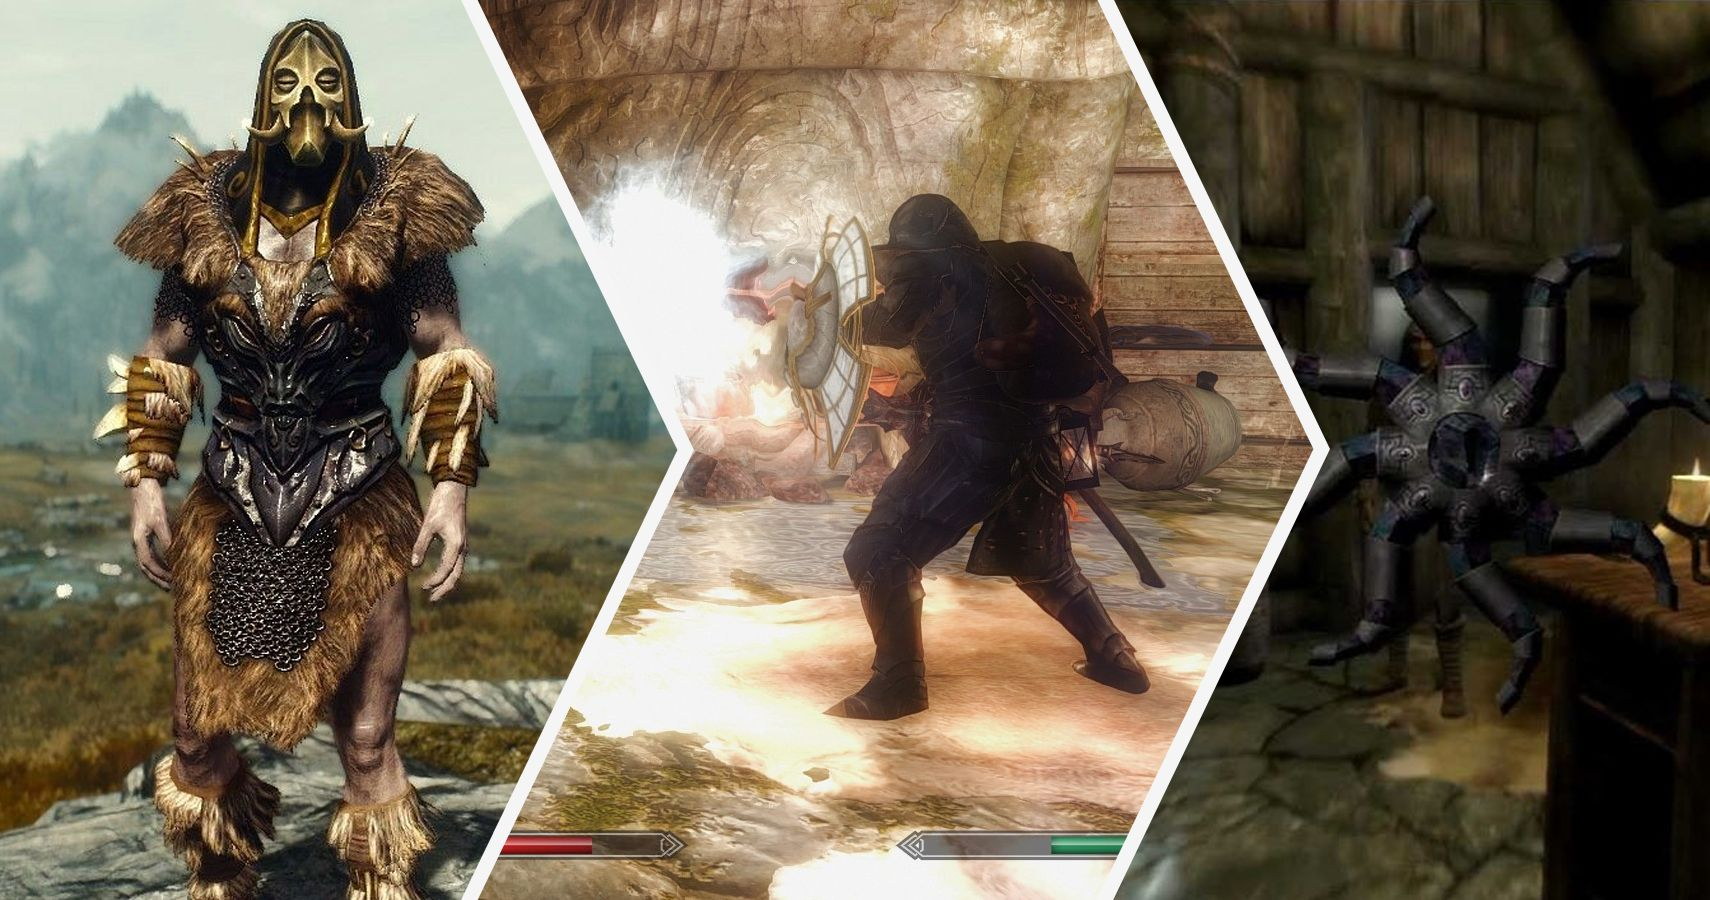 20 Rare Hidden Items In Skyrim (And How To Find Them)